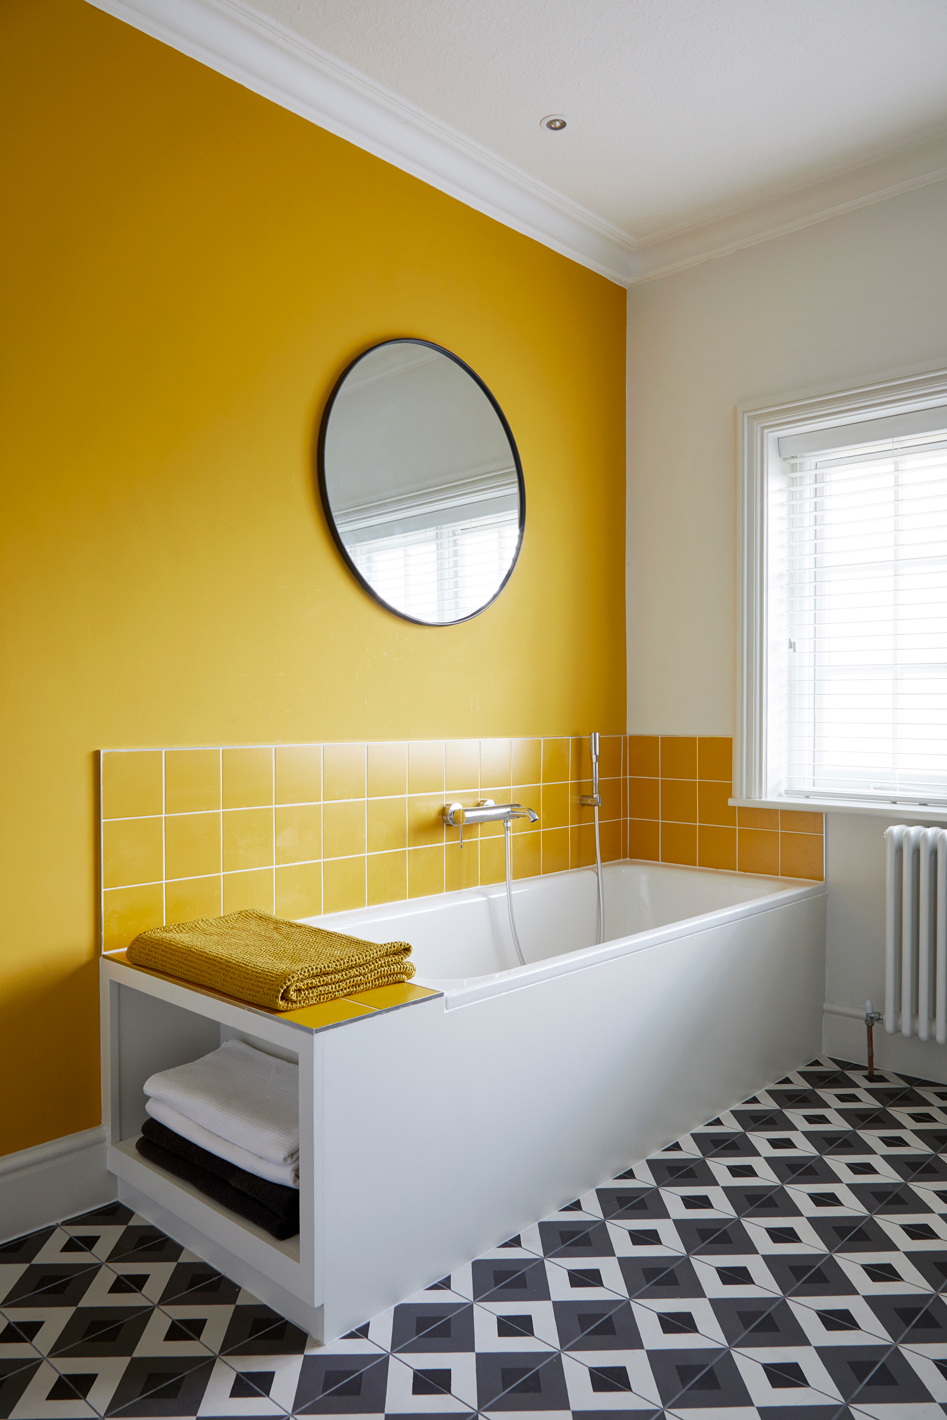 family bathroom with black and white tiles, yellow tiles